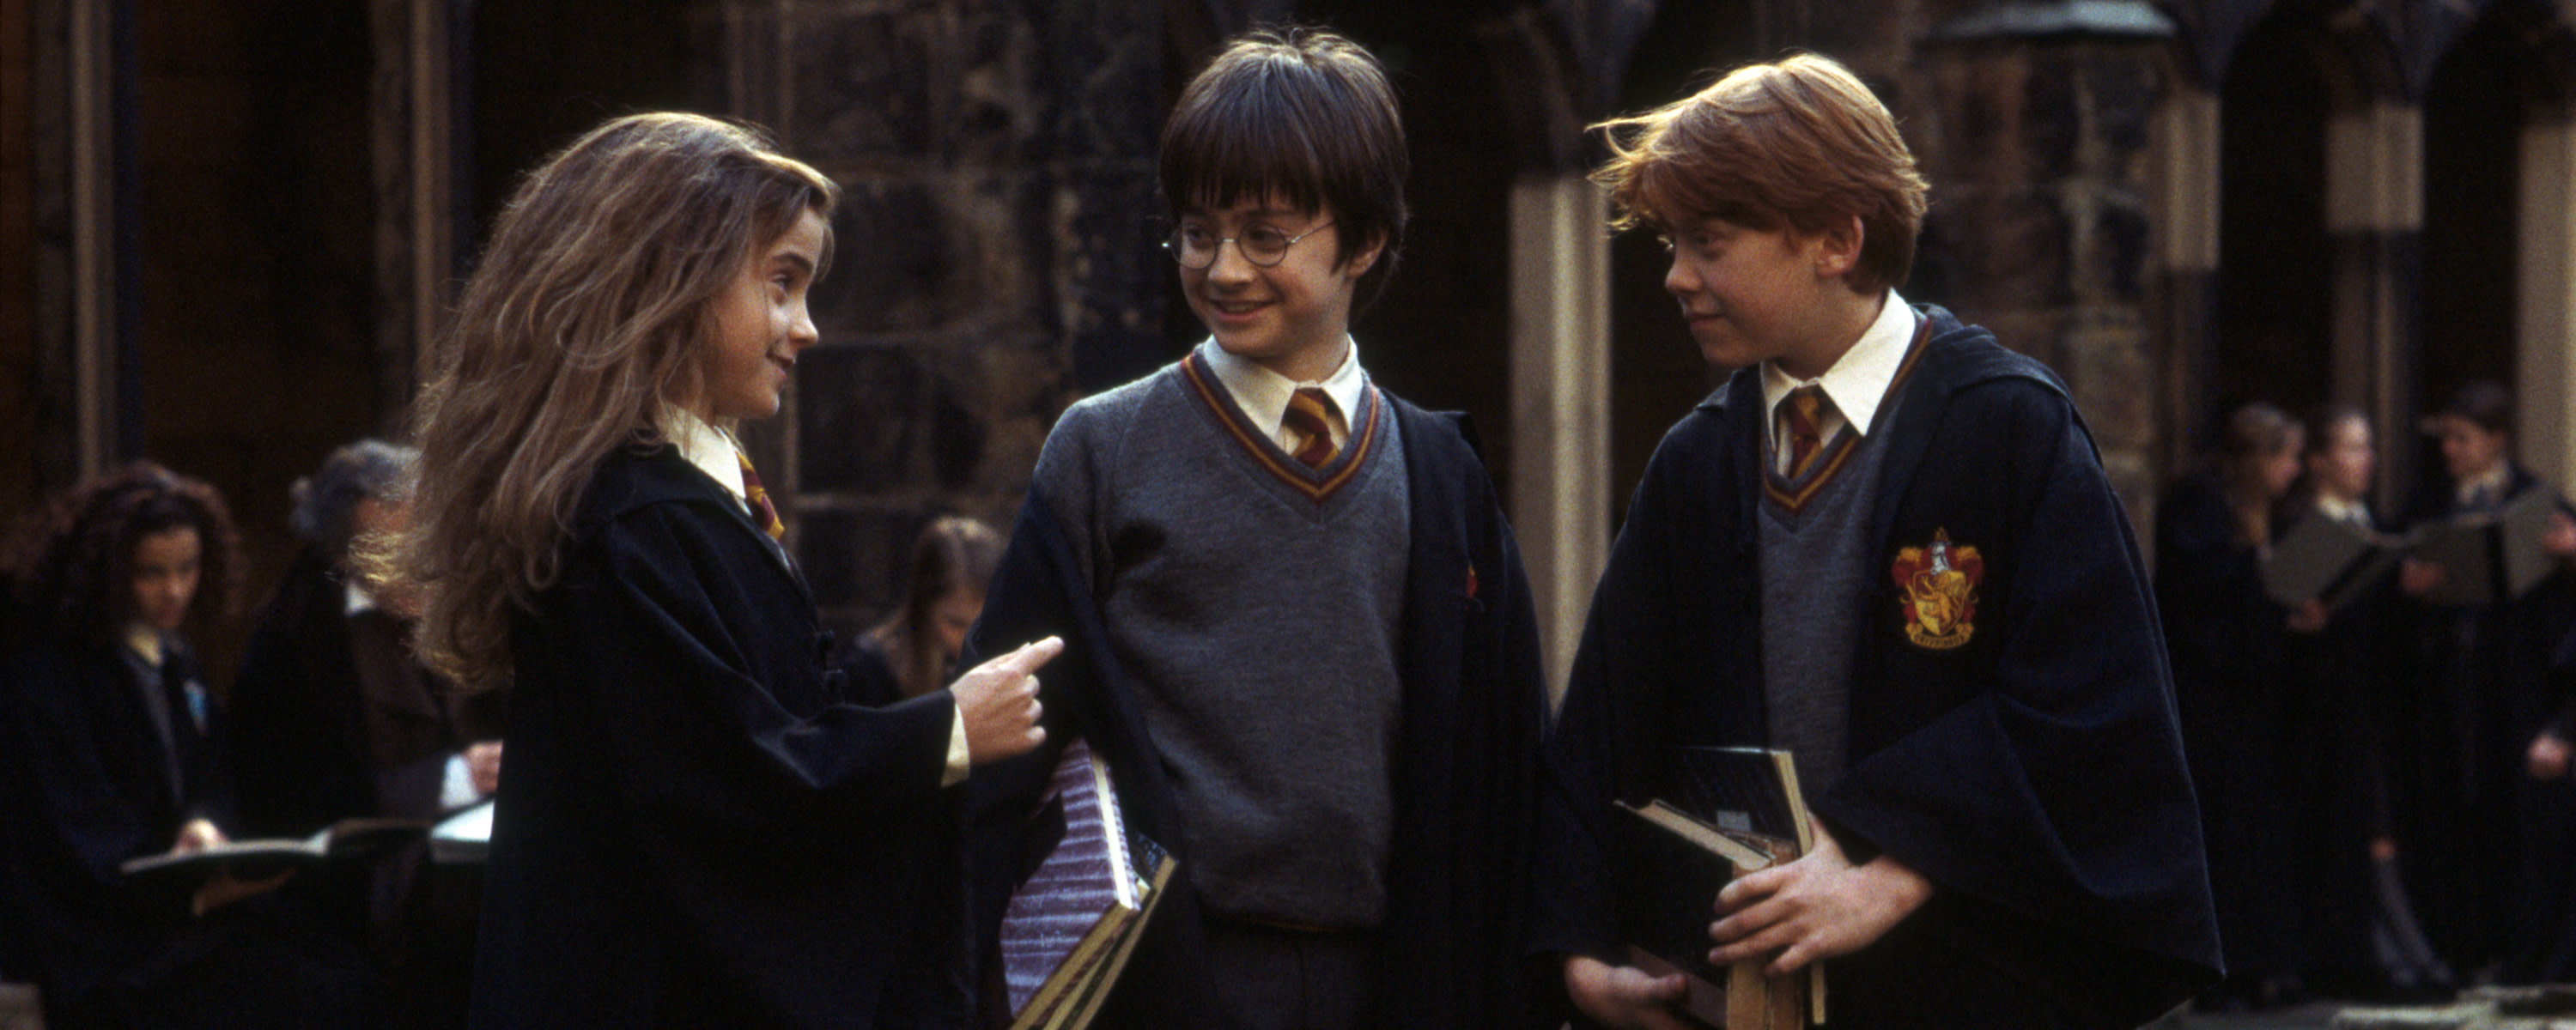 HP-F1-harry-ron-hermione-web-header